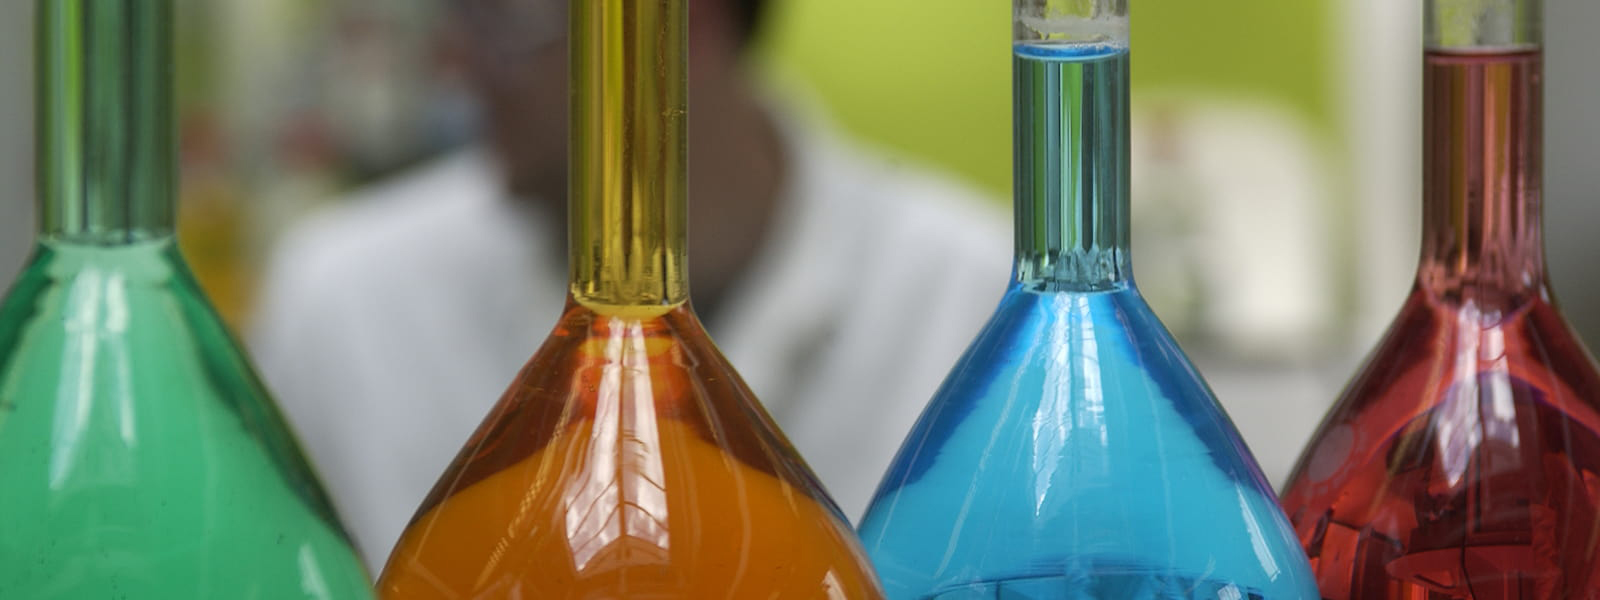 Coloured liquid in beakers